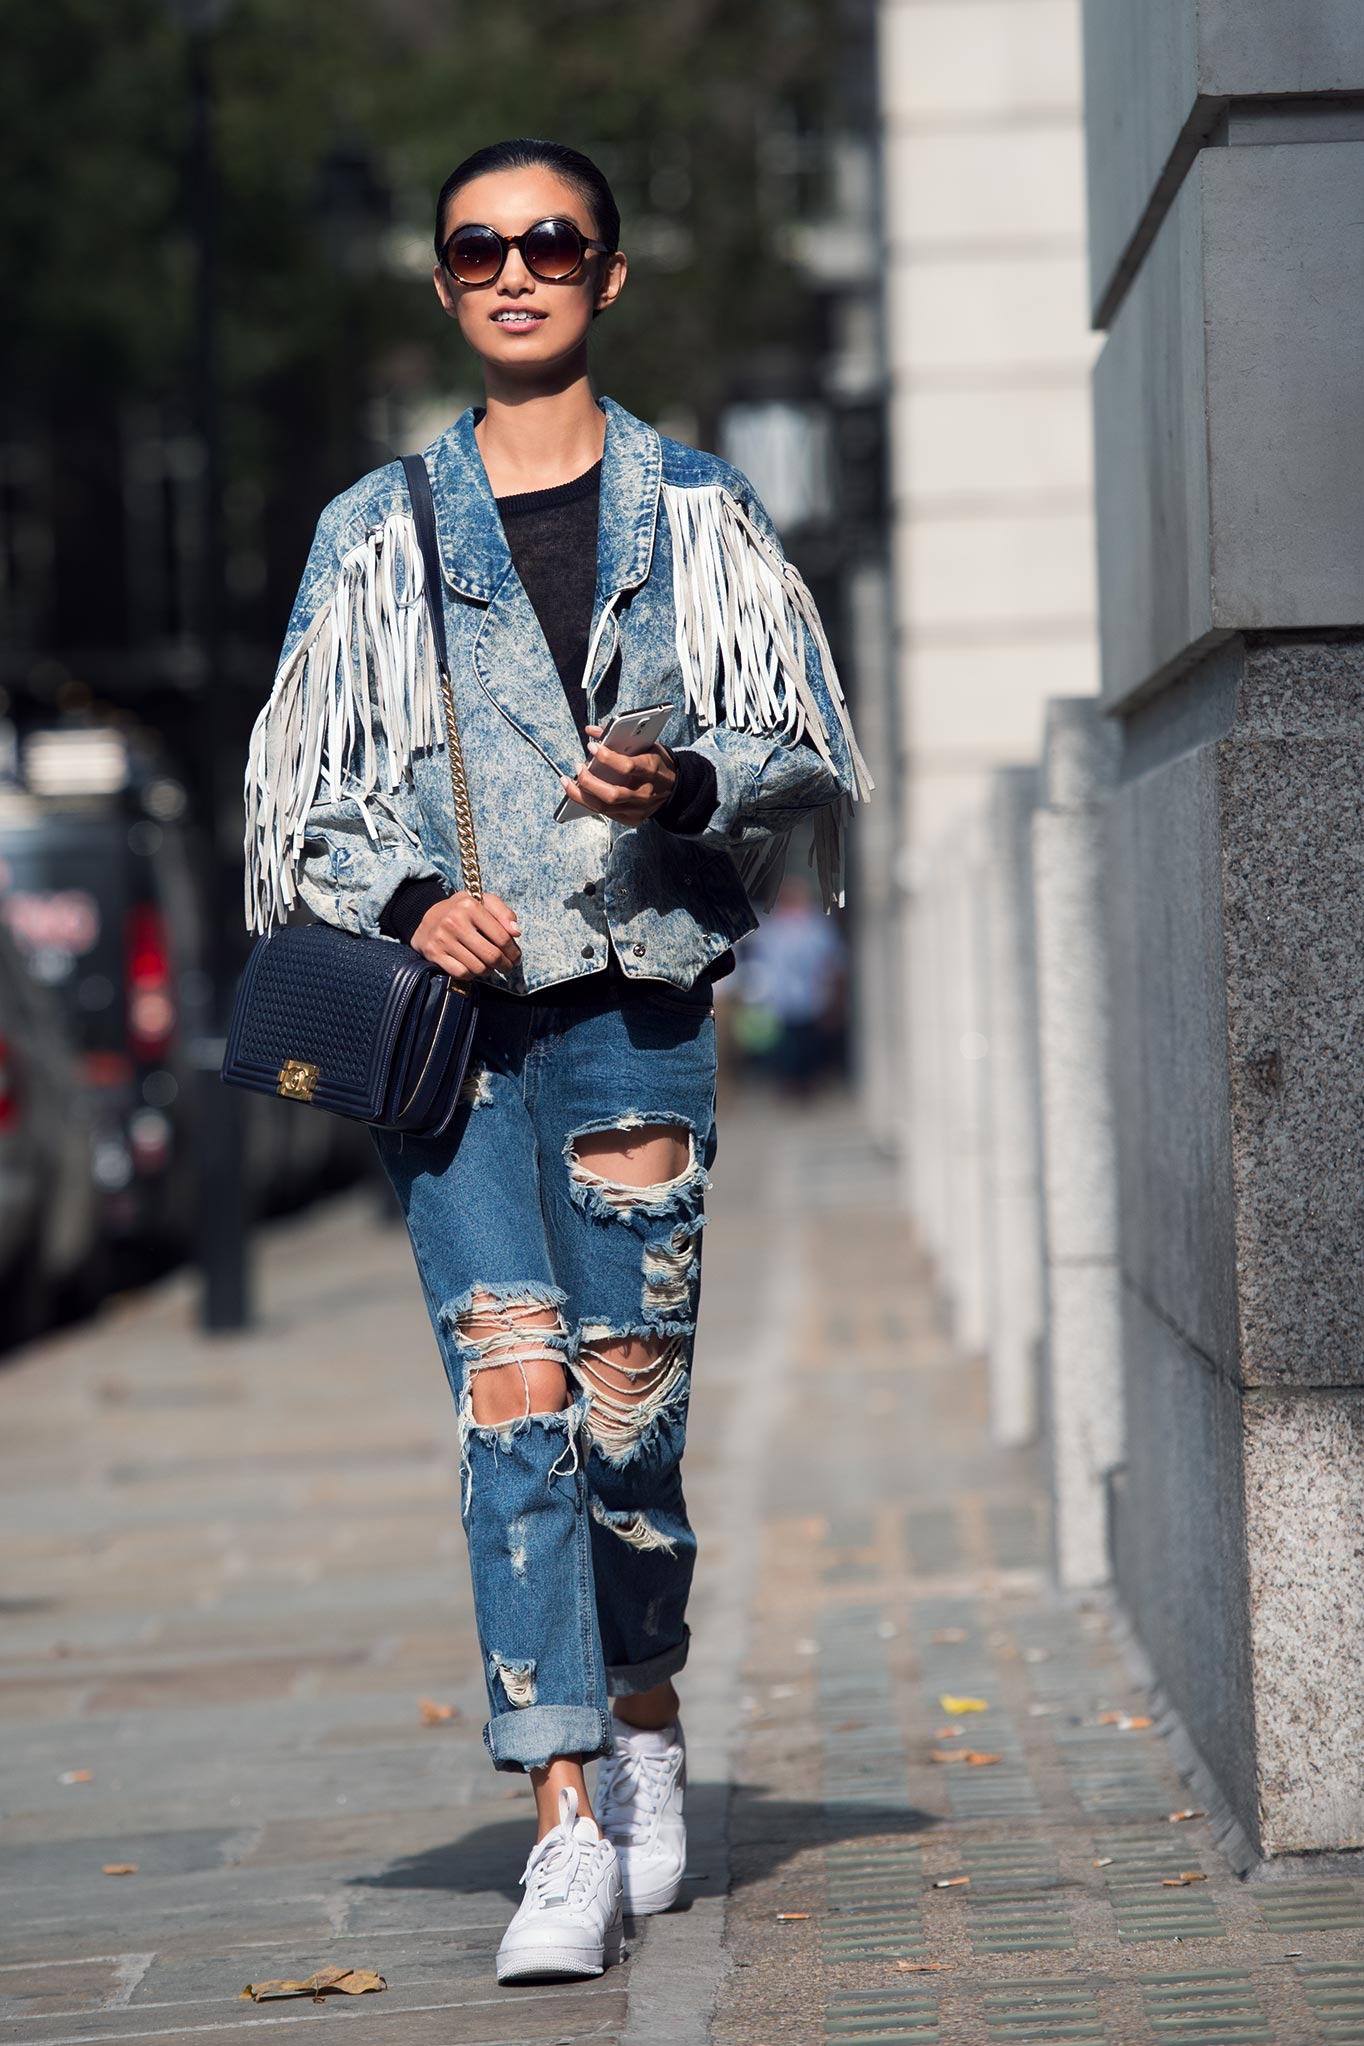 Sissi Hou at London Fashion Week Spring/Summer 2015